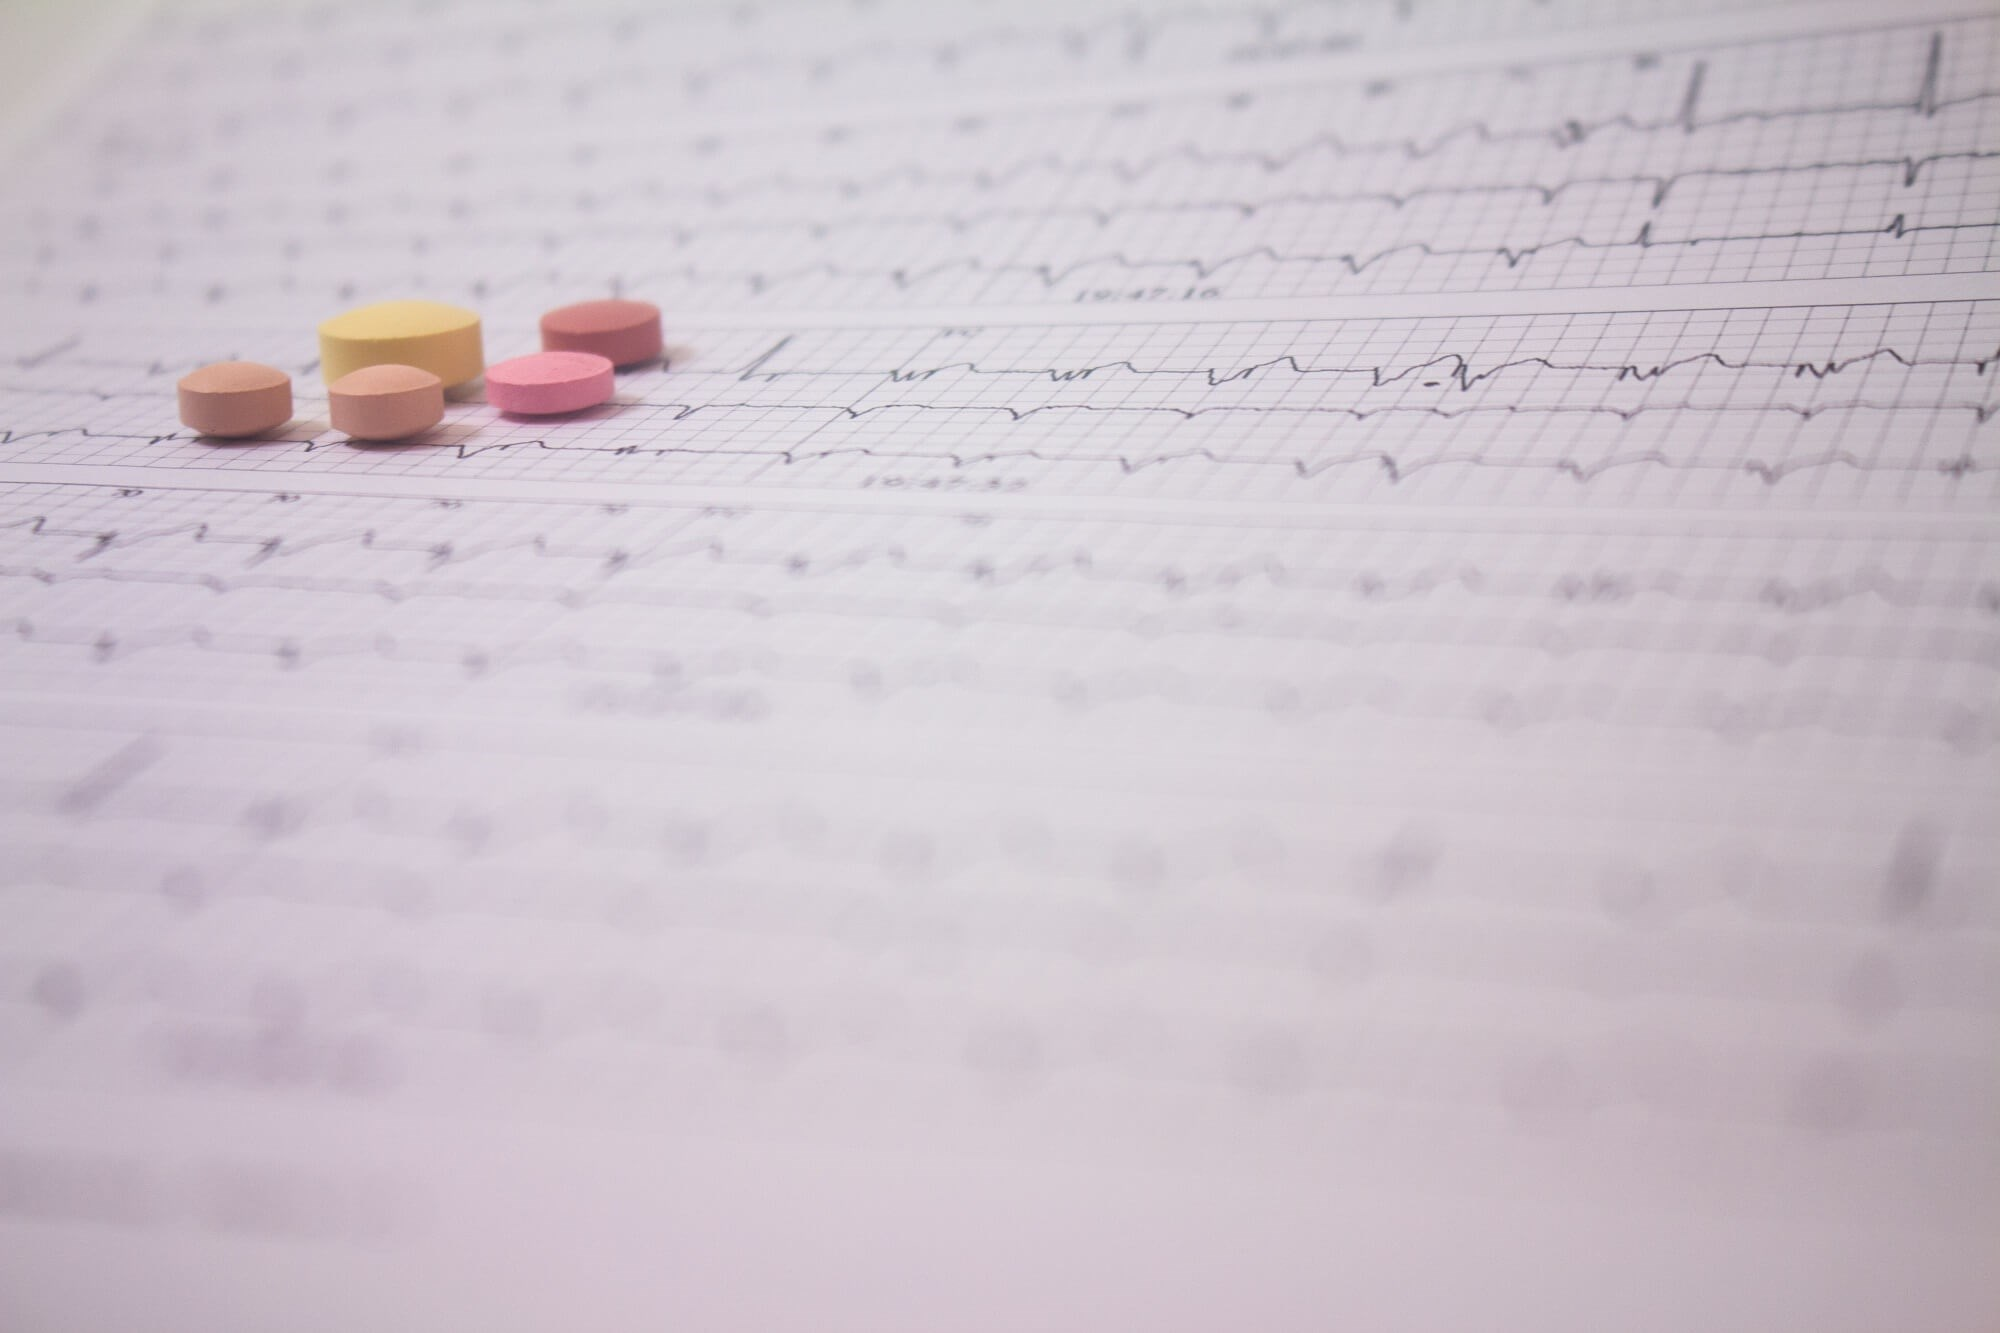 Opioid Use Linked to Increased Atrial Fibrillation Risk